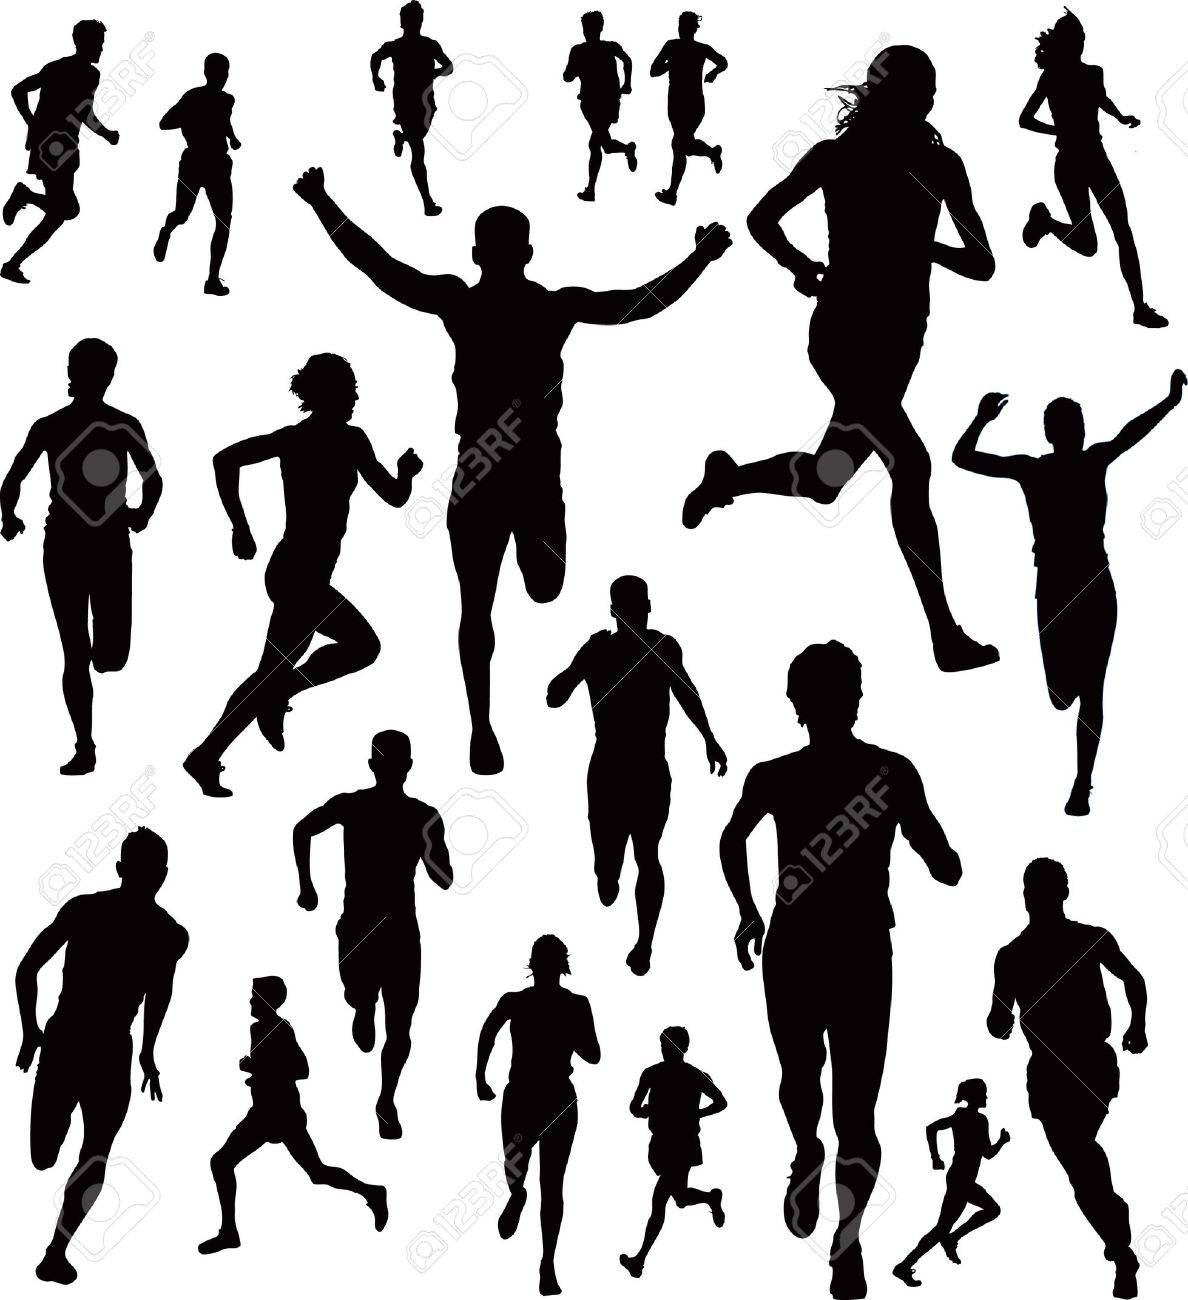 Cross country running clipart black and white images free download